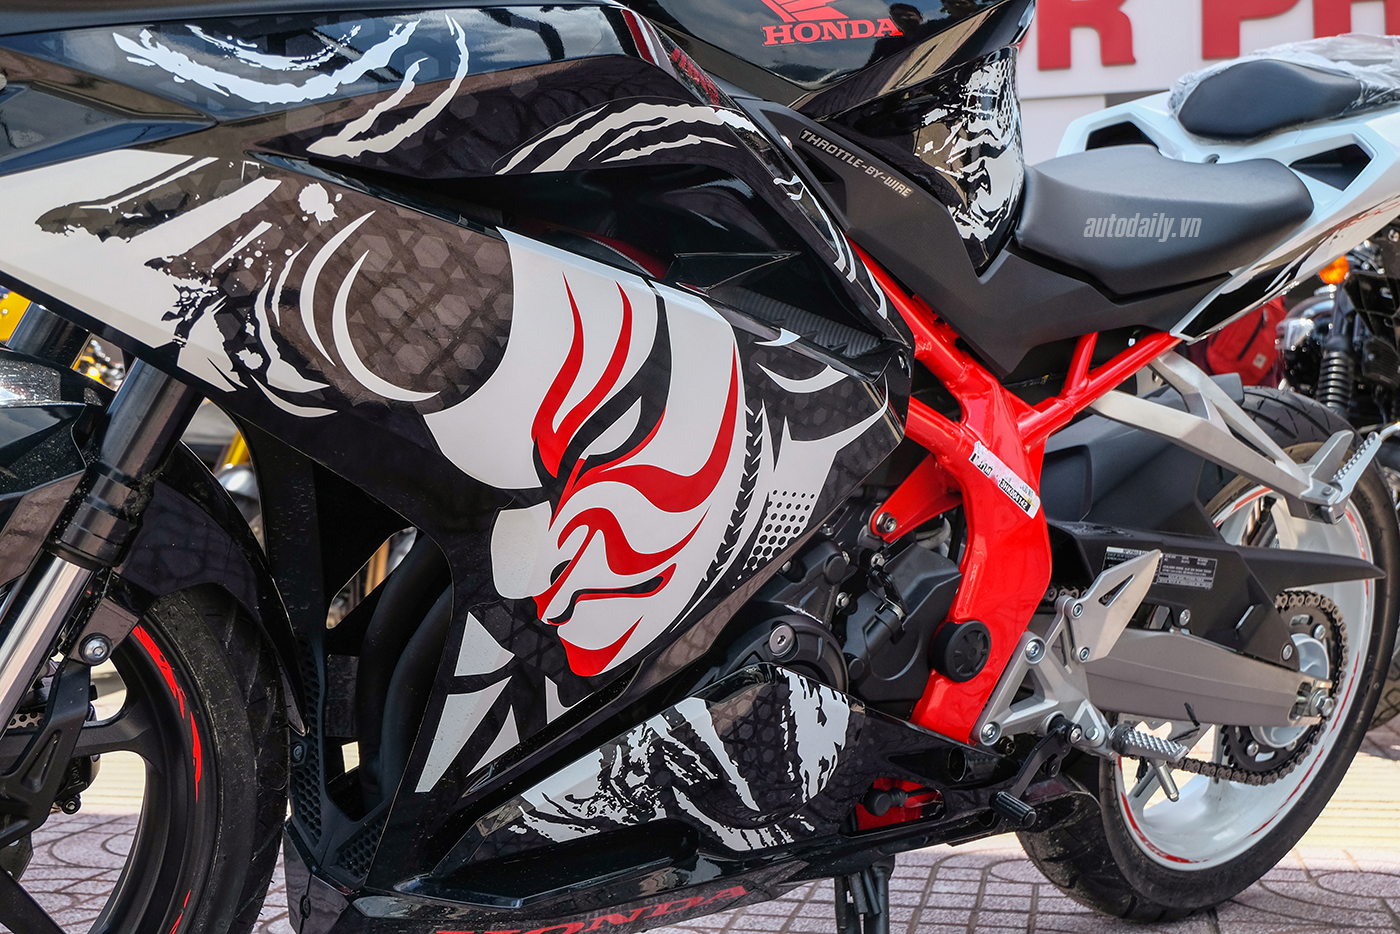 honda-cbr250rr-the-art-of-kabuki-2017-3.jpg